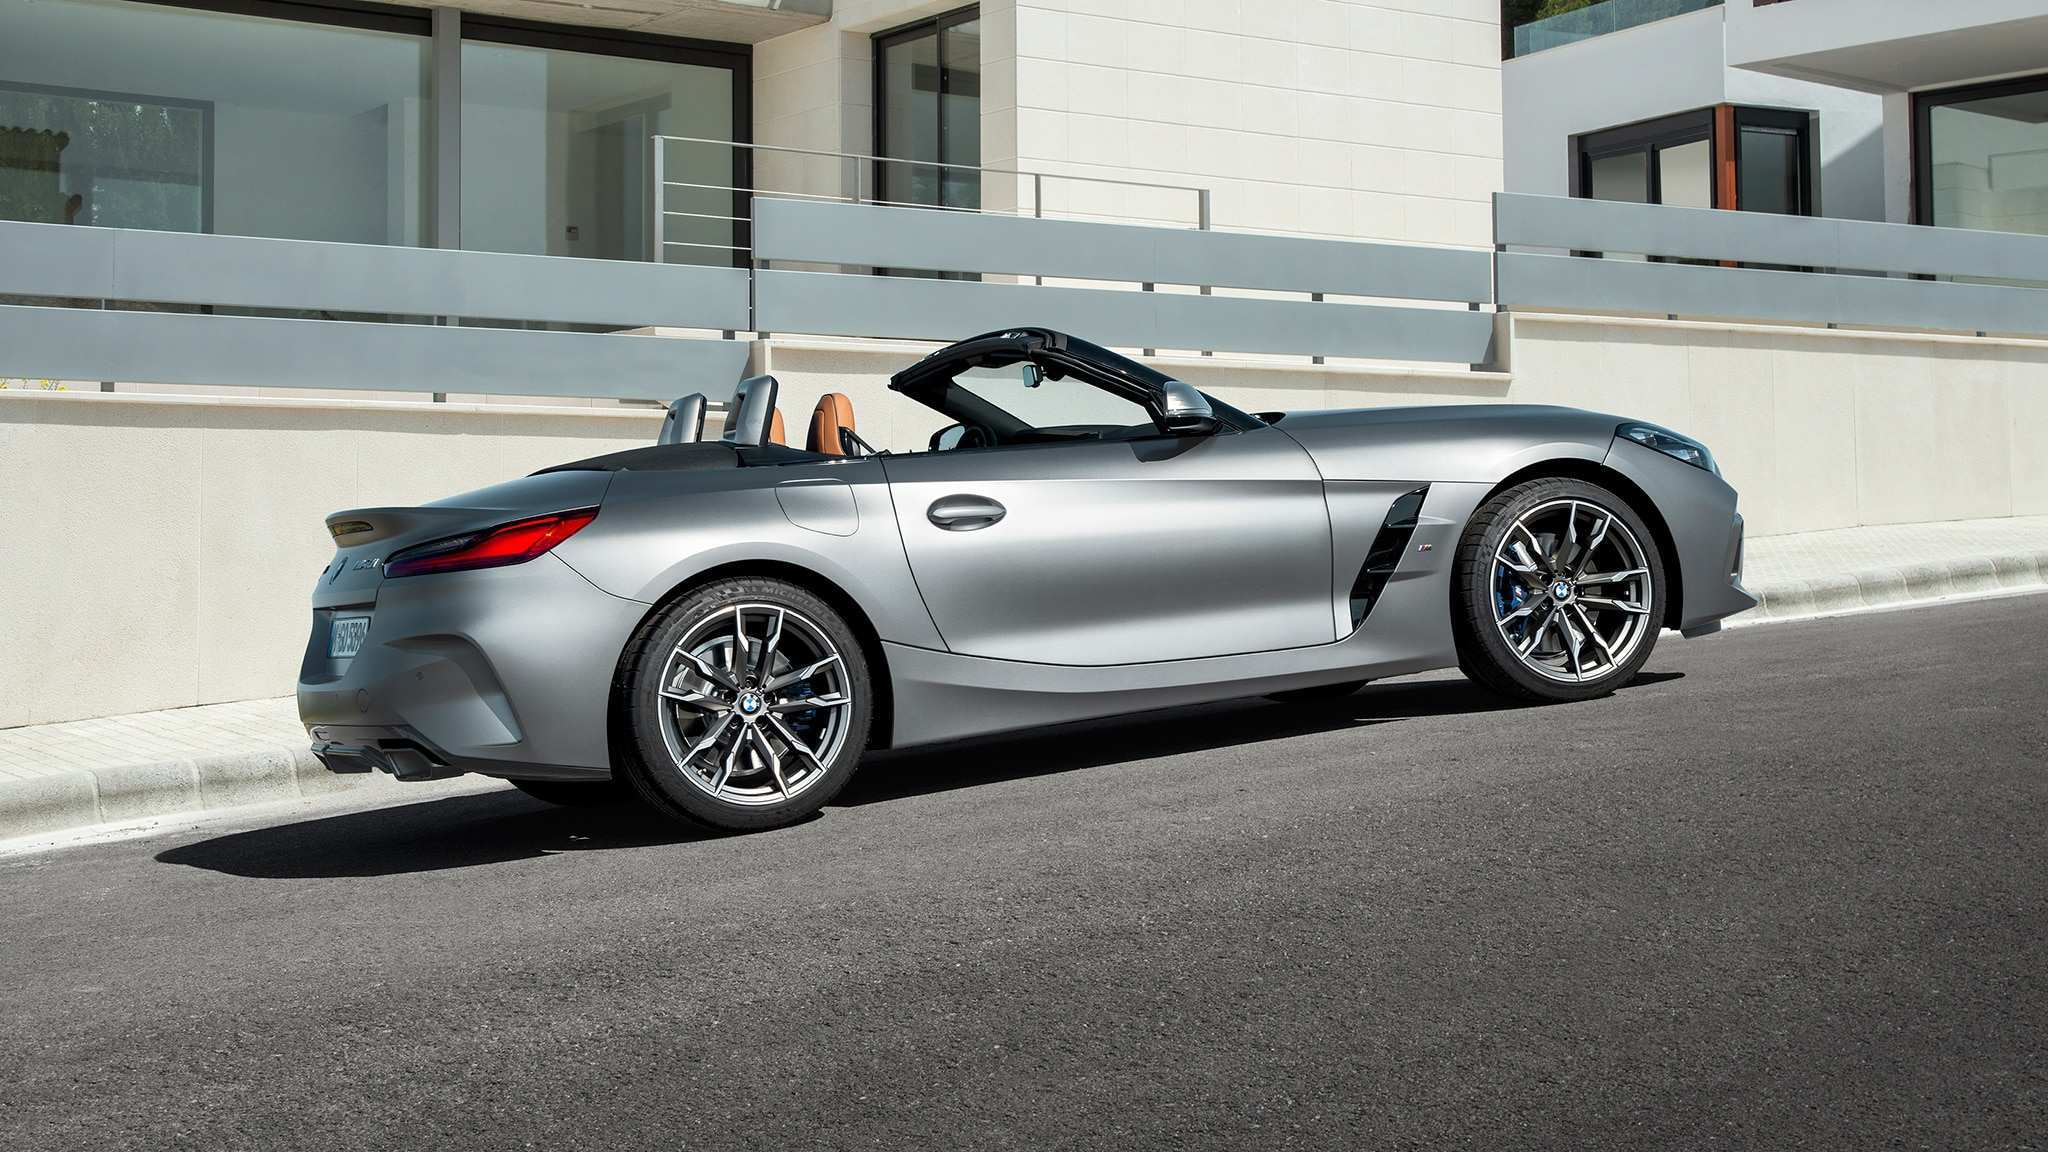 21 New The Bmw Z4 2019 Engine First Drive Specs and Review by The Bmw Z4 2019 Engine First Drive